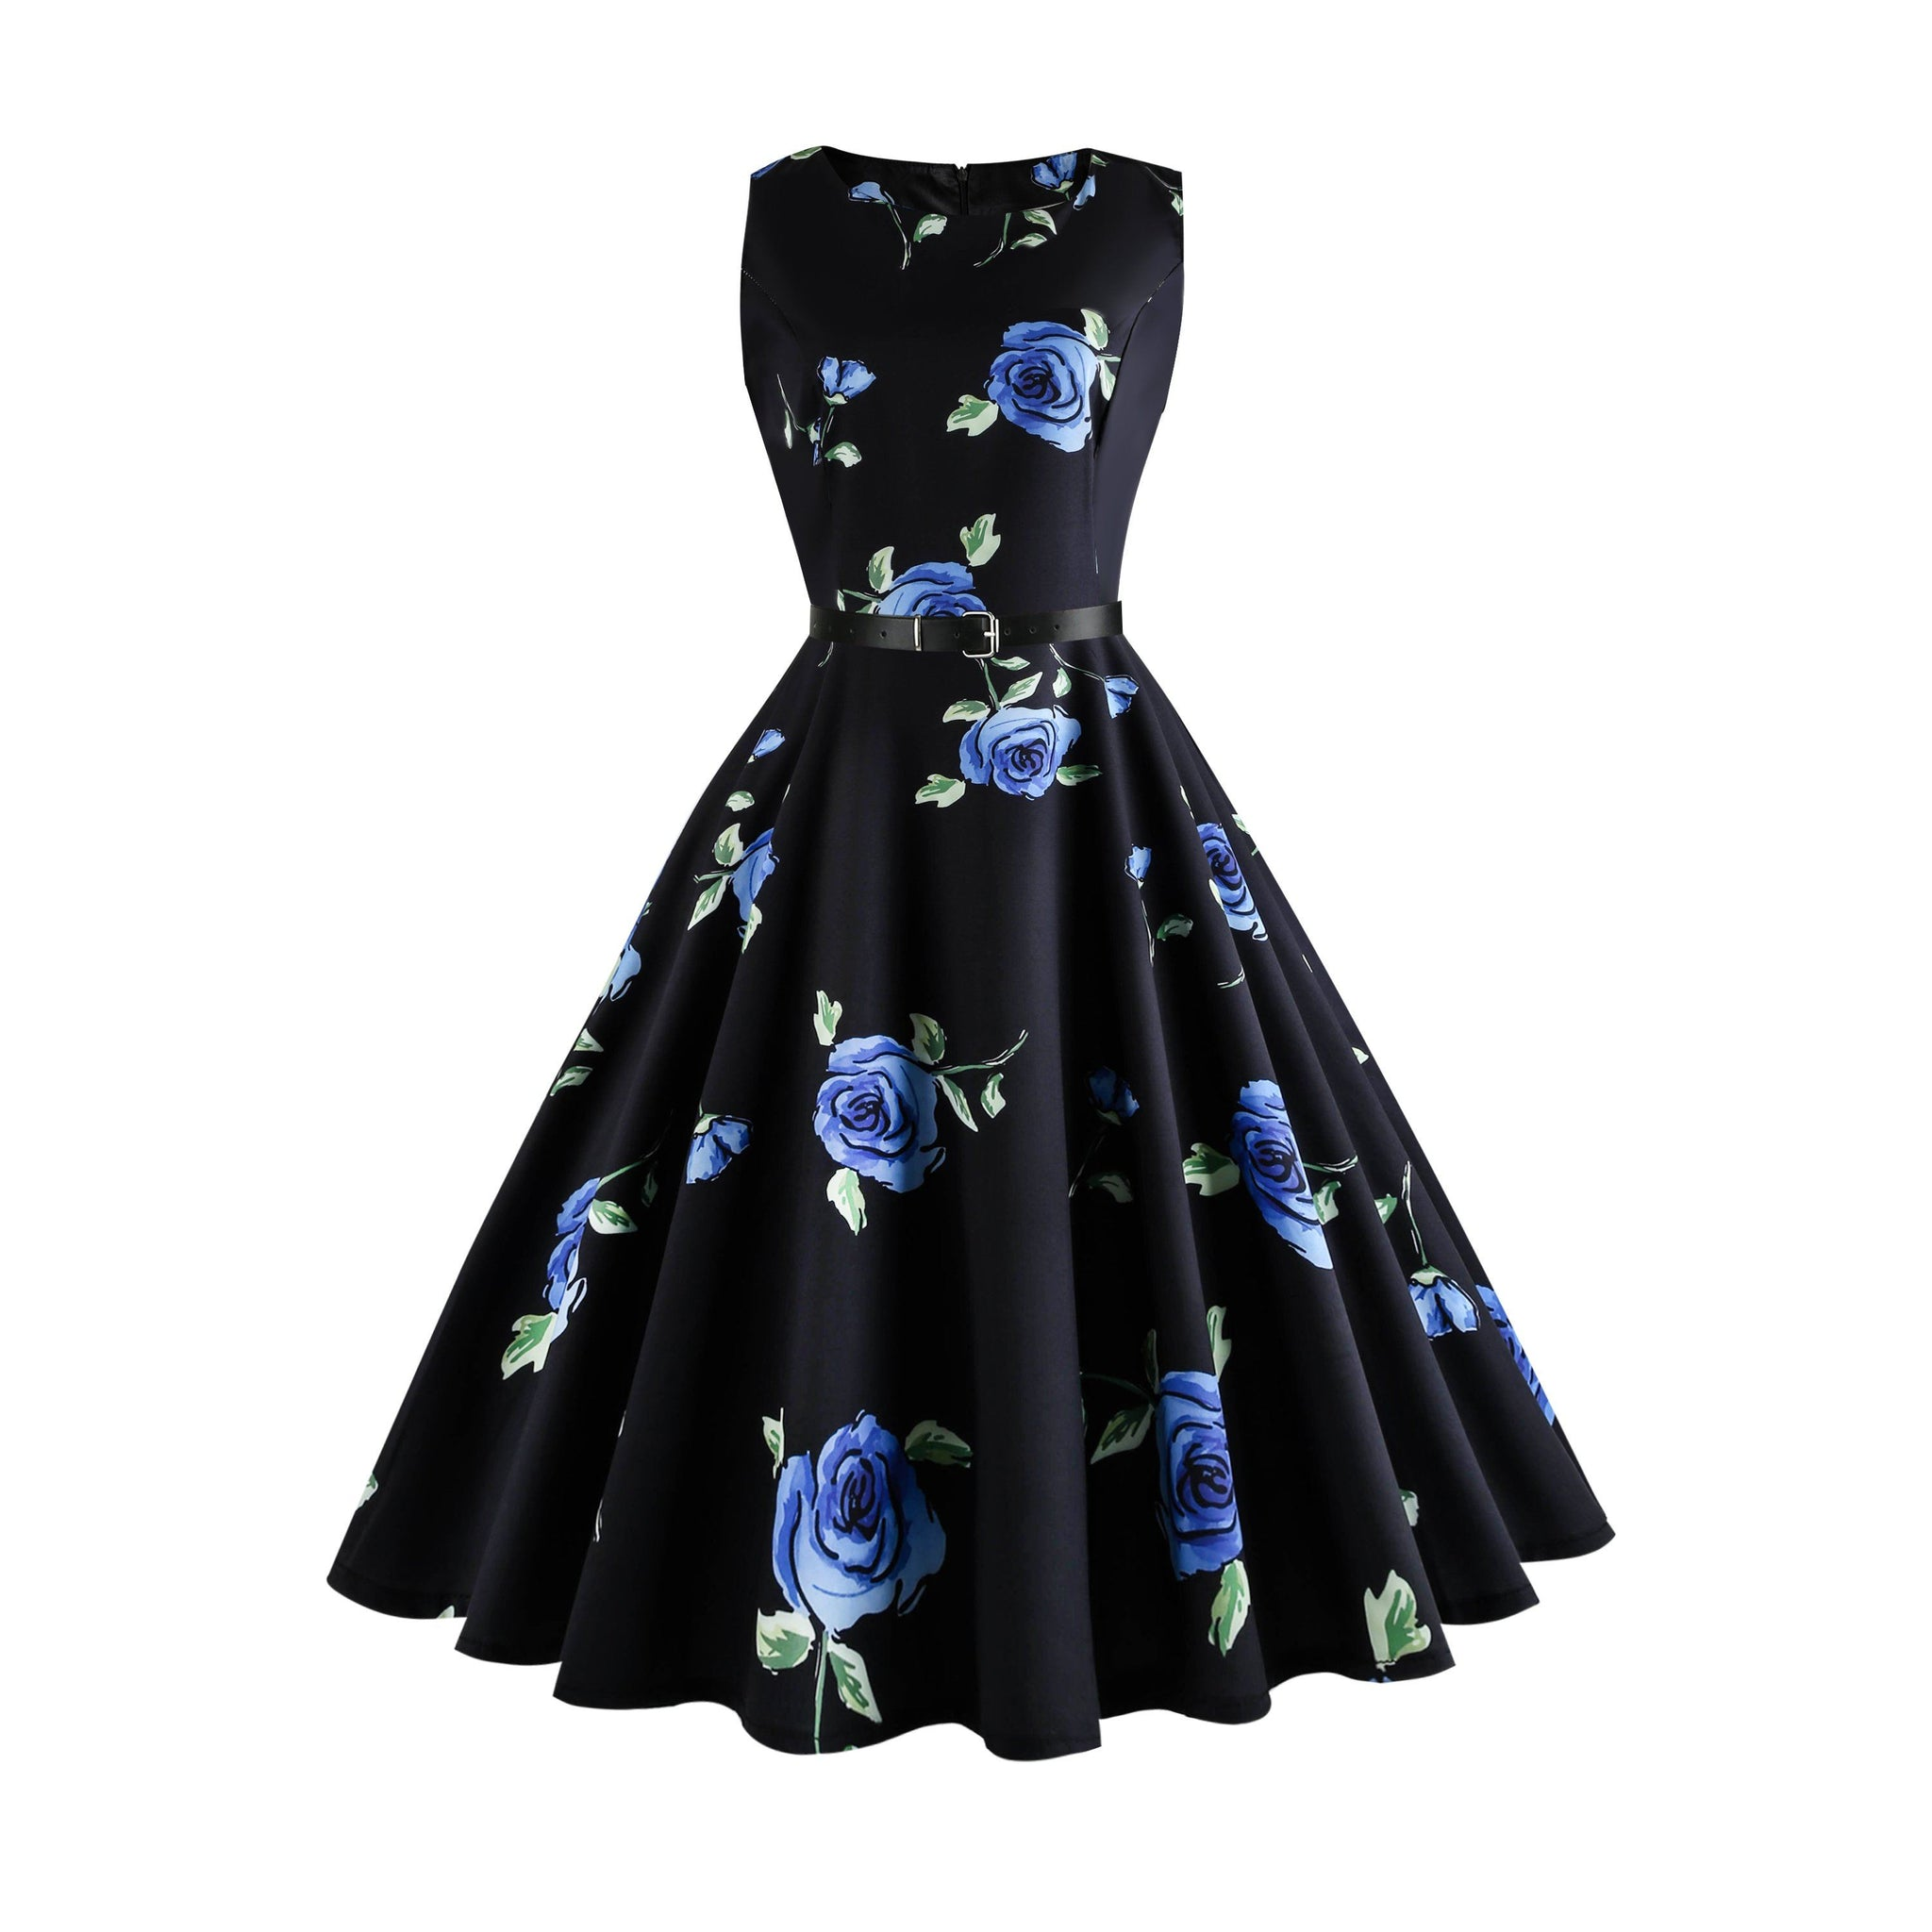 Vintage 1950s Elegant Printed Floral Audrey Dress Retro Cocktail Dress